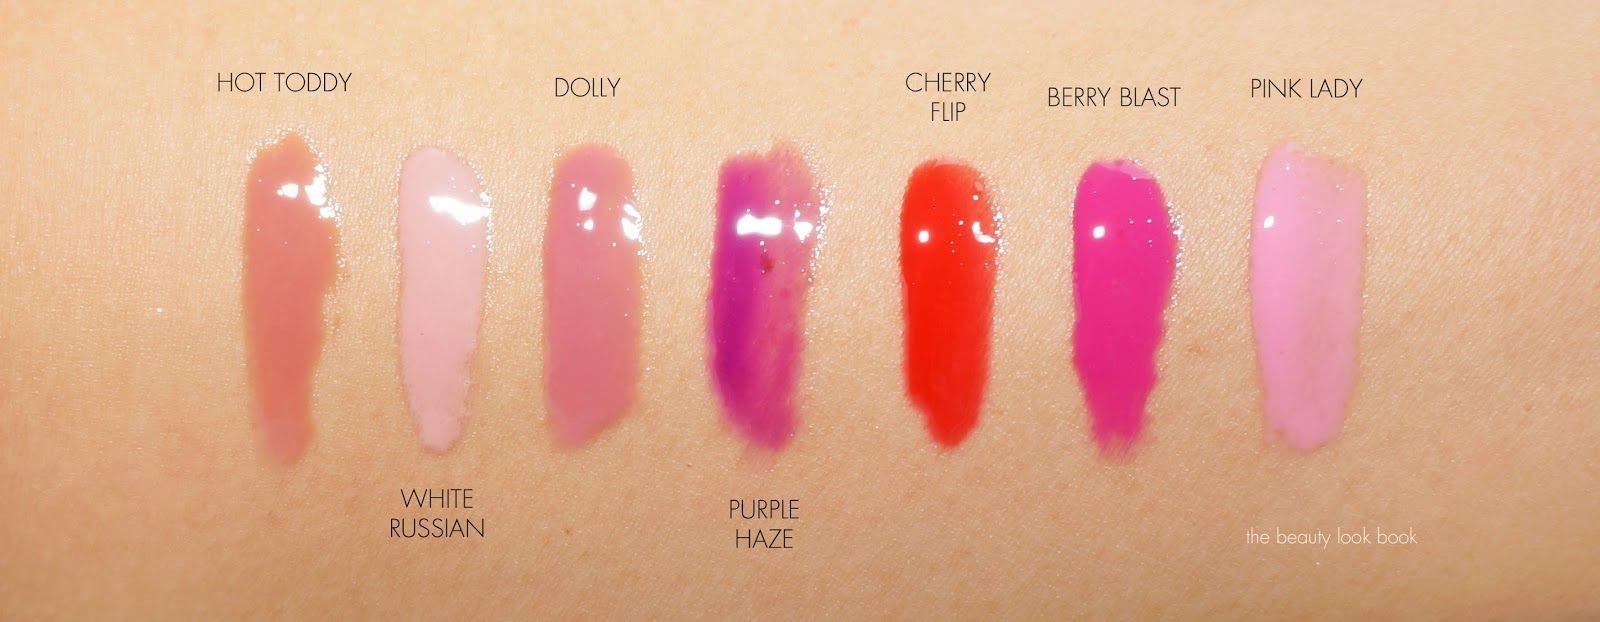 Full-On Plumping Lip Cream Gloss by Buxom #13